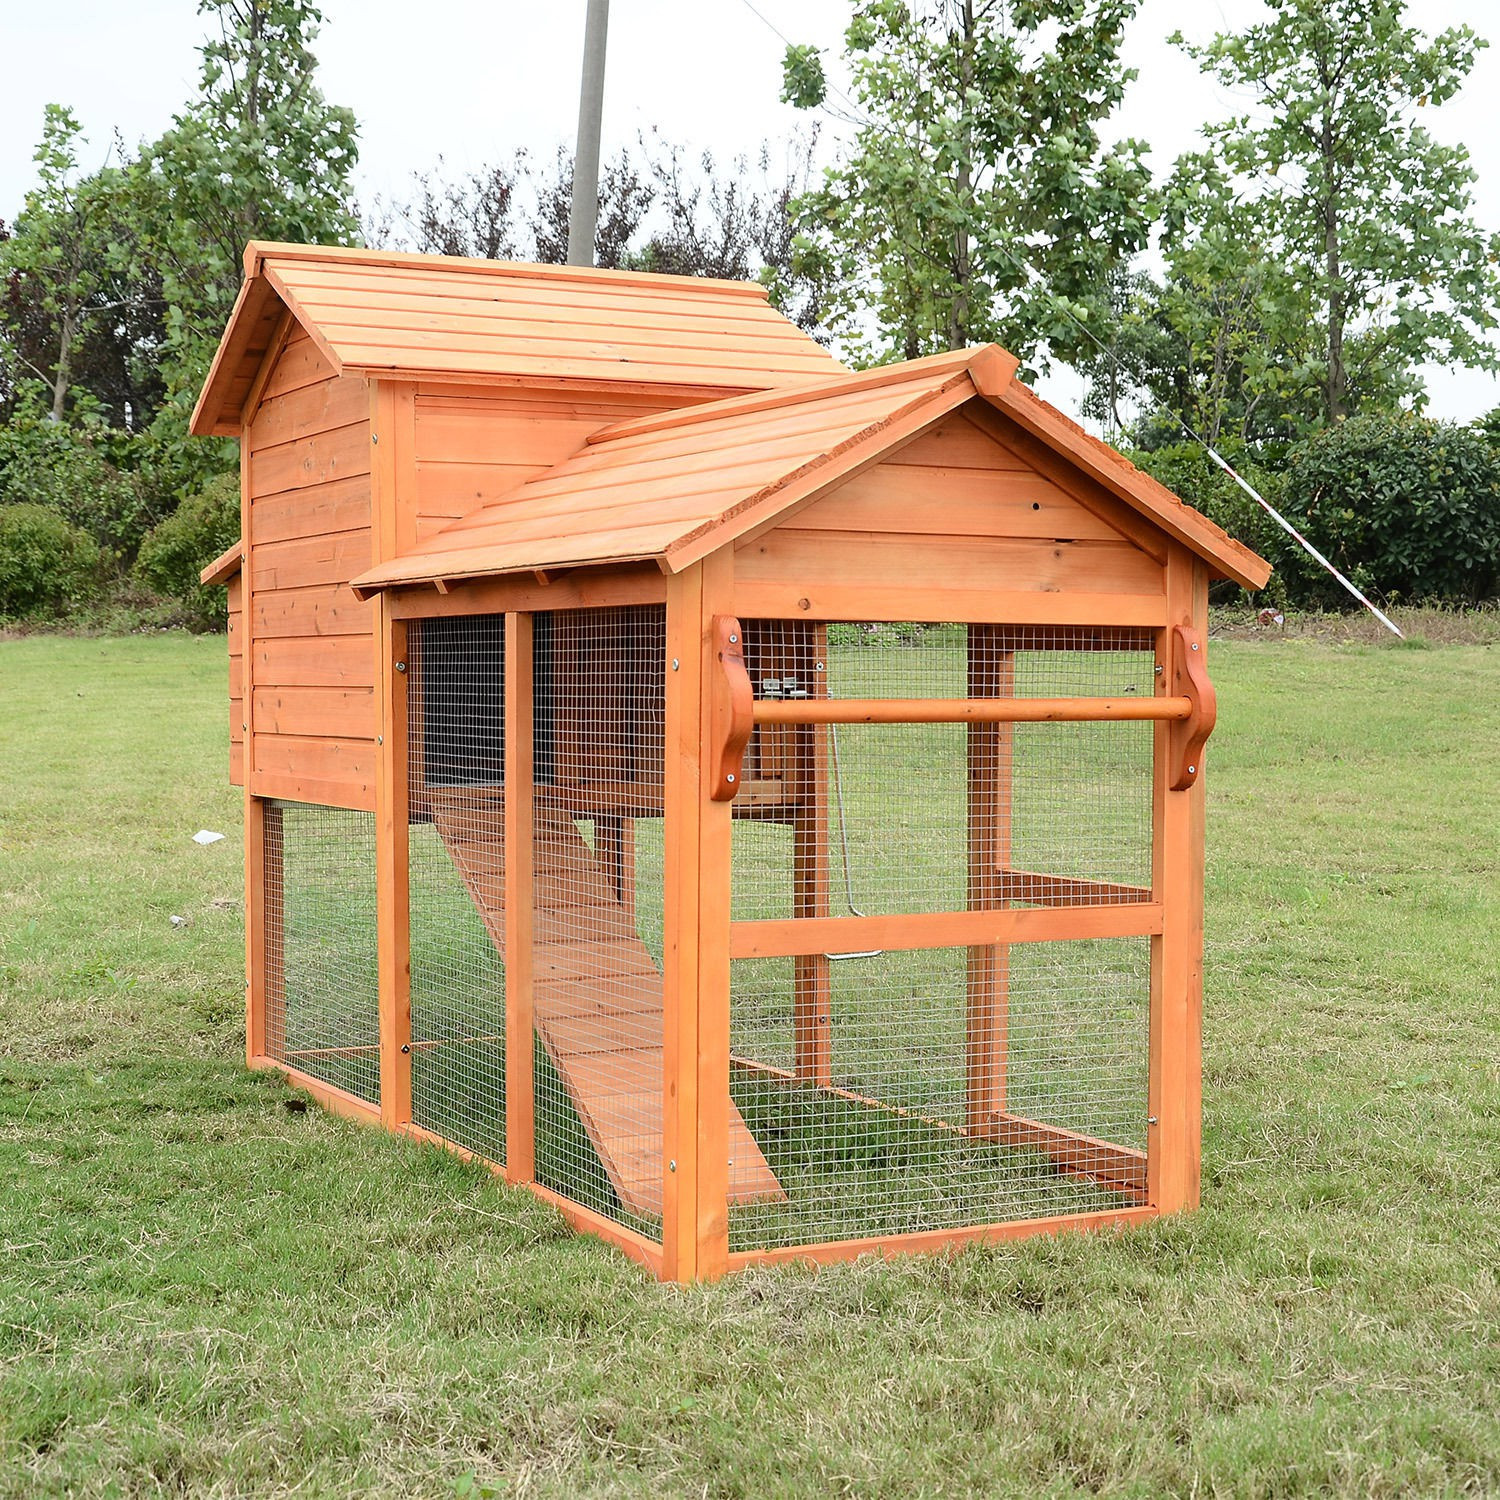 Best ideas about Backyard Chicken Coop . Save or Pin Pawhut Deluxe Backyard Chicken Coop w Outdoor Run Now.